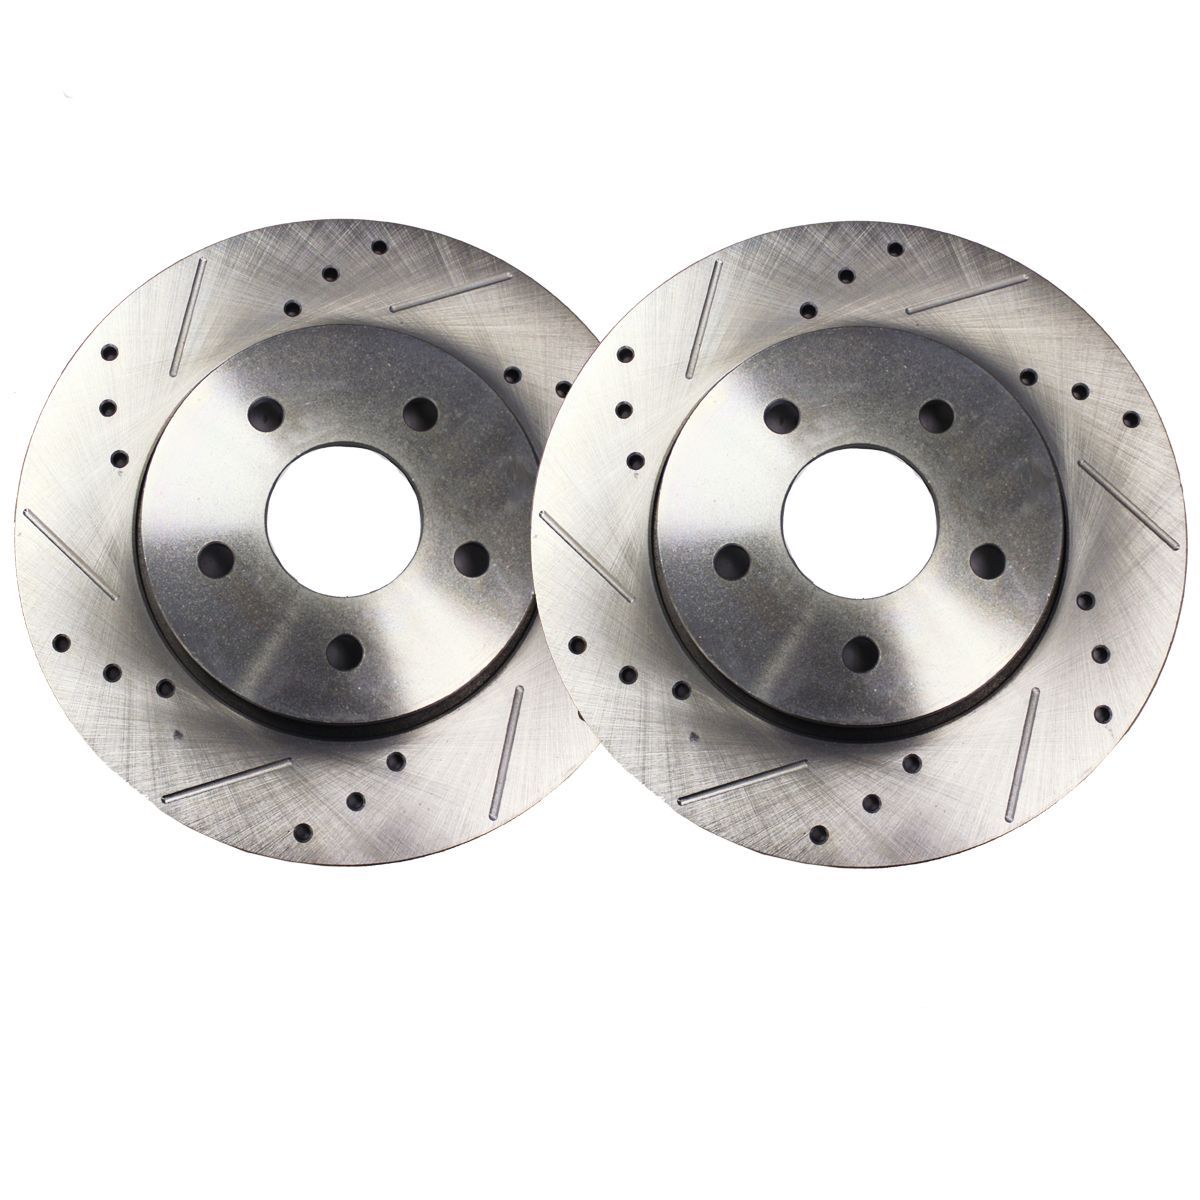 Front Drilled and Slotted Brake Rotors #S-31275-Acura/Honda